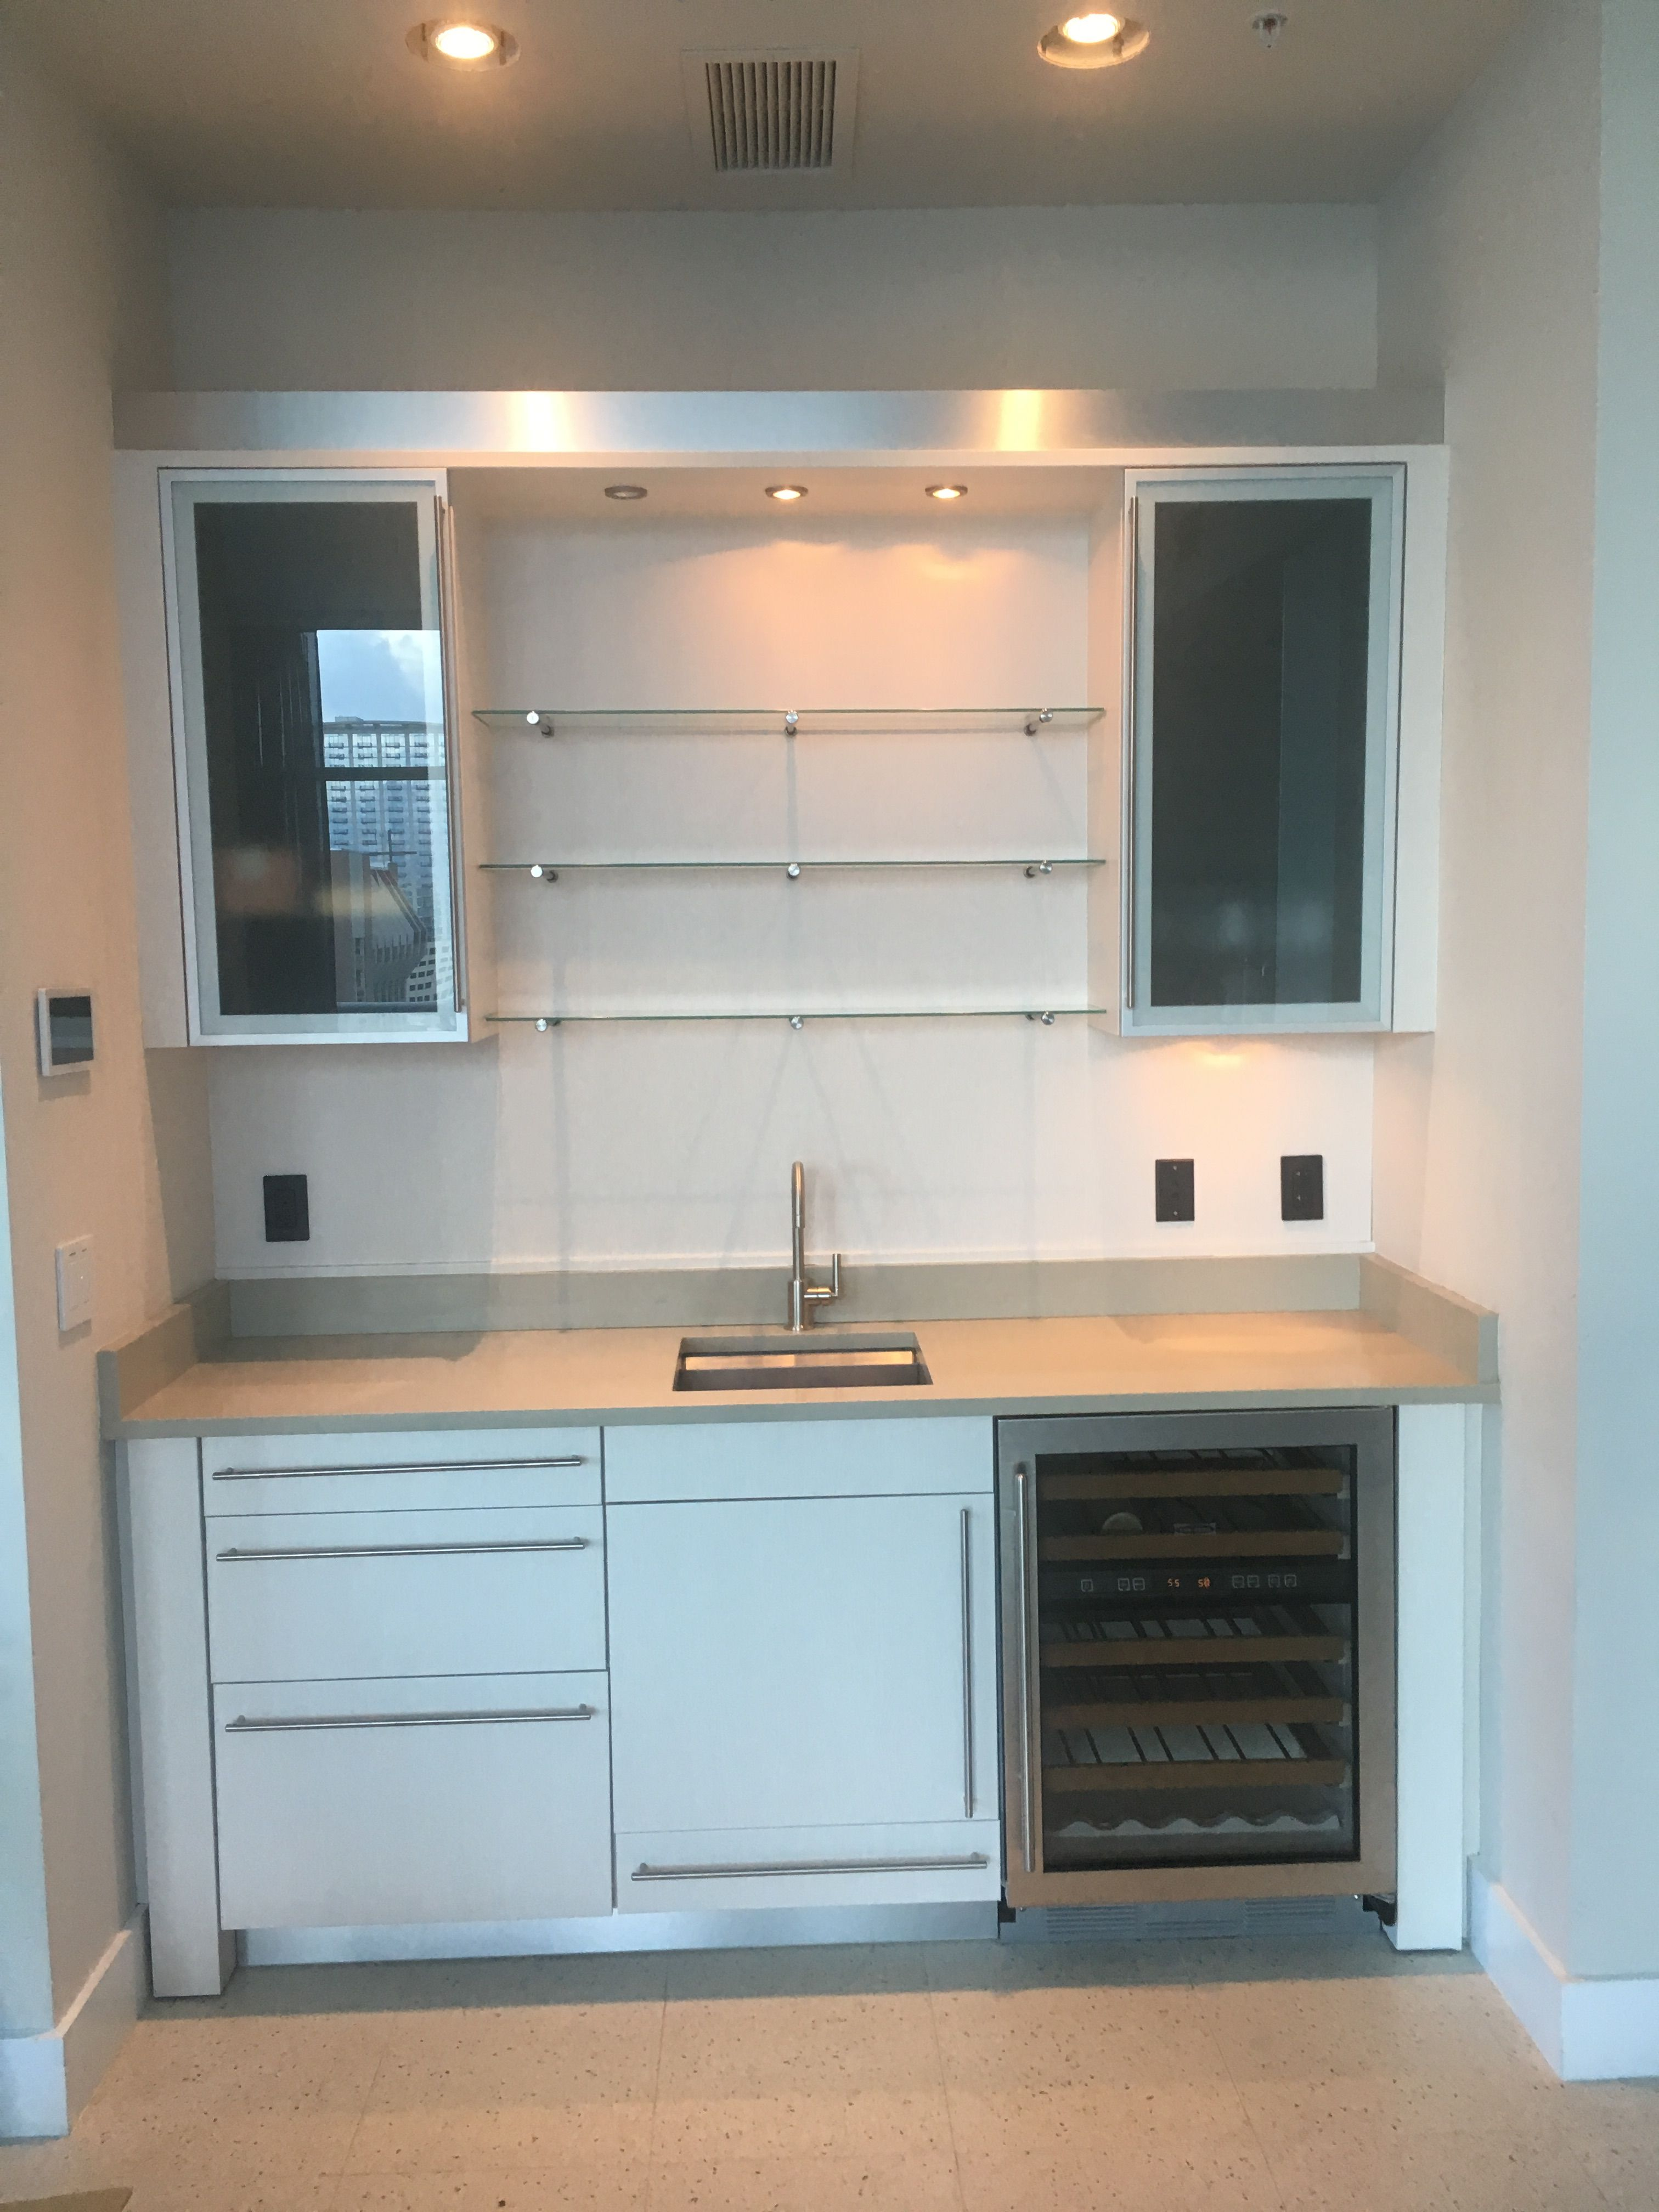 Kitchen Cabinetry Wrap We Used Belbien Vinyl Www Rmwrapsstore Com Randy 208 696 1180 Used Kitchen Cabinets Kitchen Cabinets Wrapped Kitchen Cabinets Models